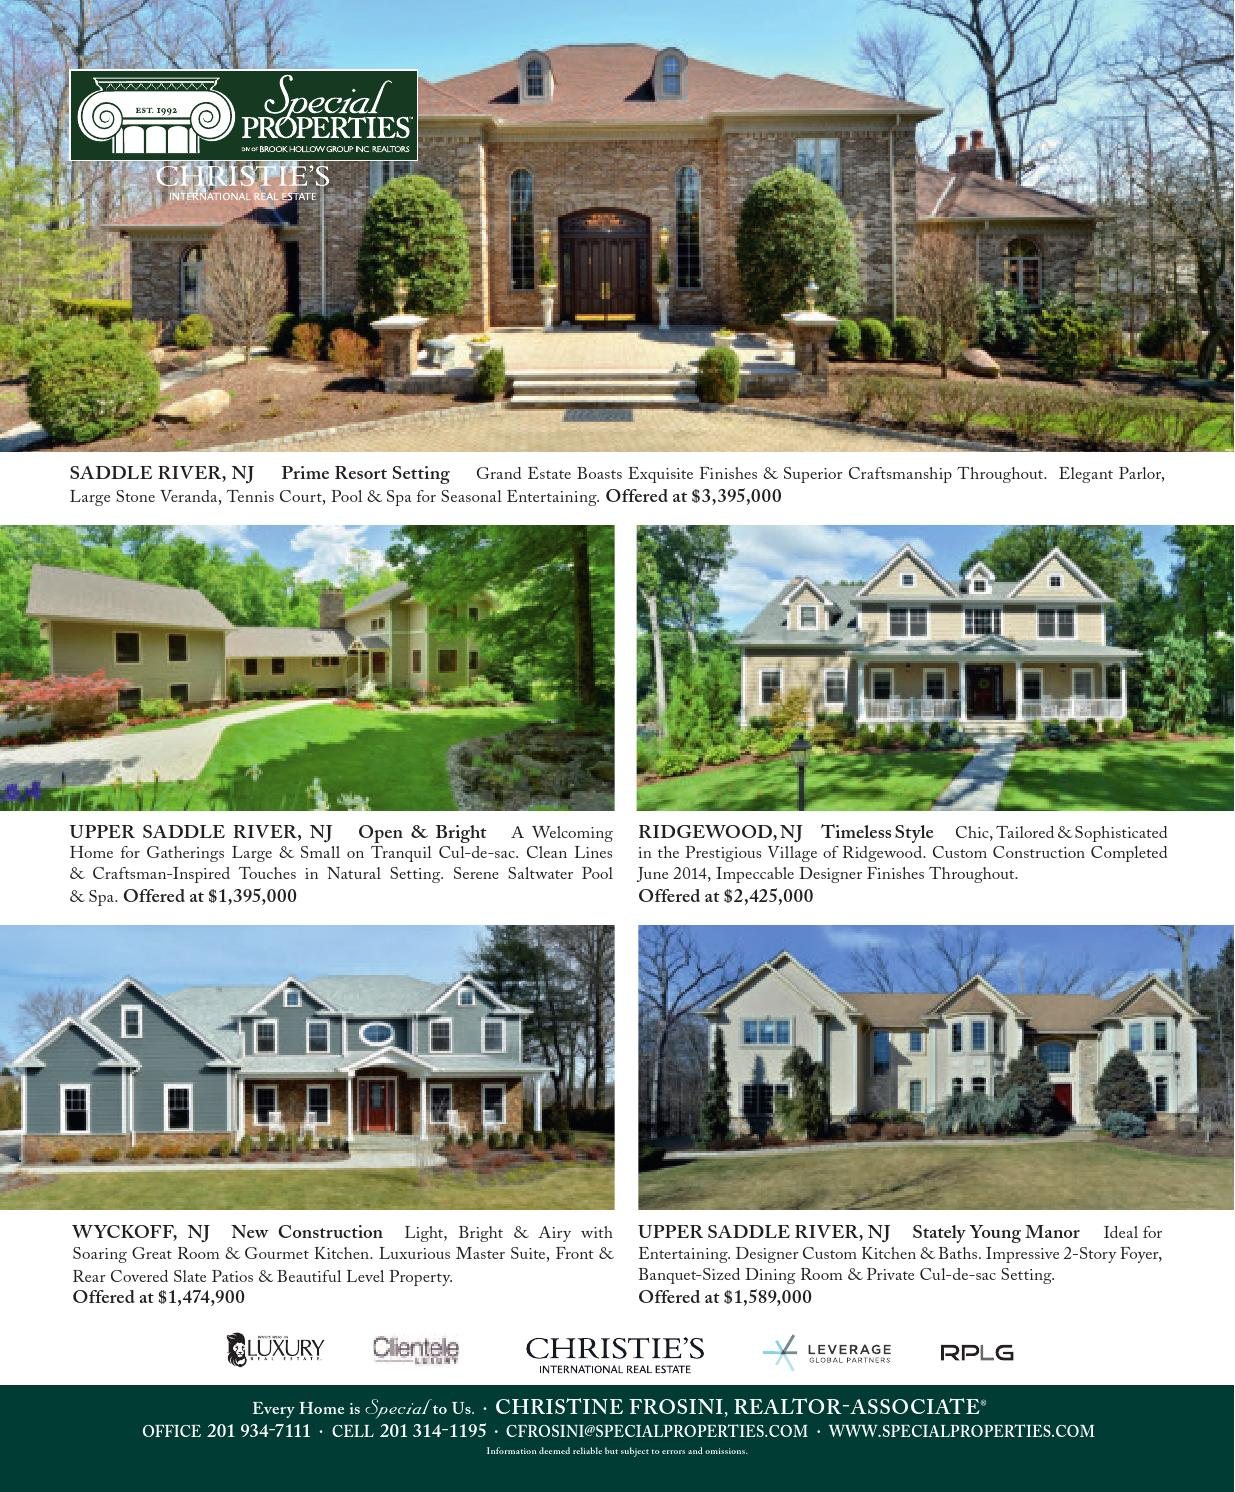 Luxury Home Builders Nj: Gallery New Jersey Luxury Homes & Estates: Spring 2016 By